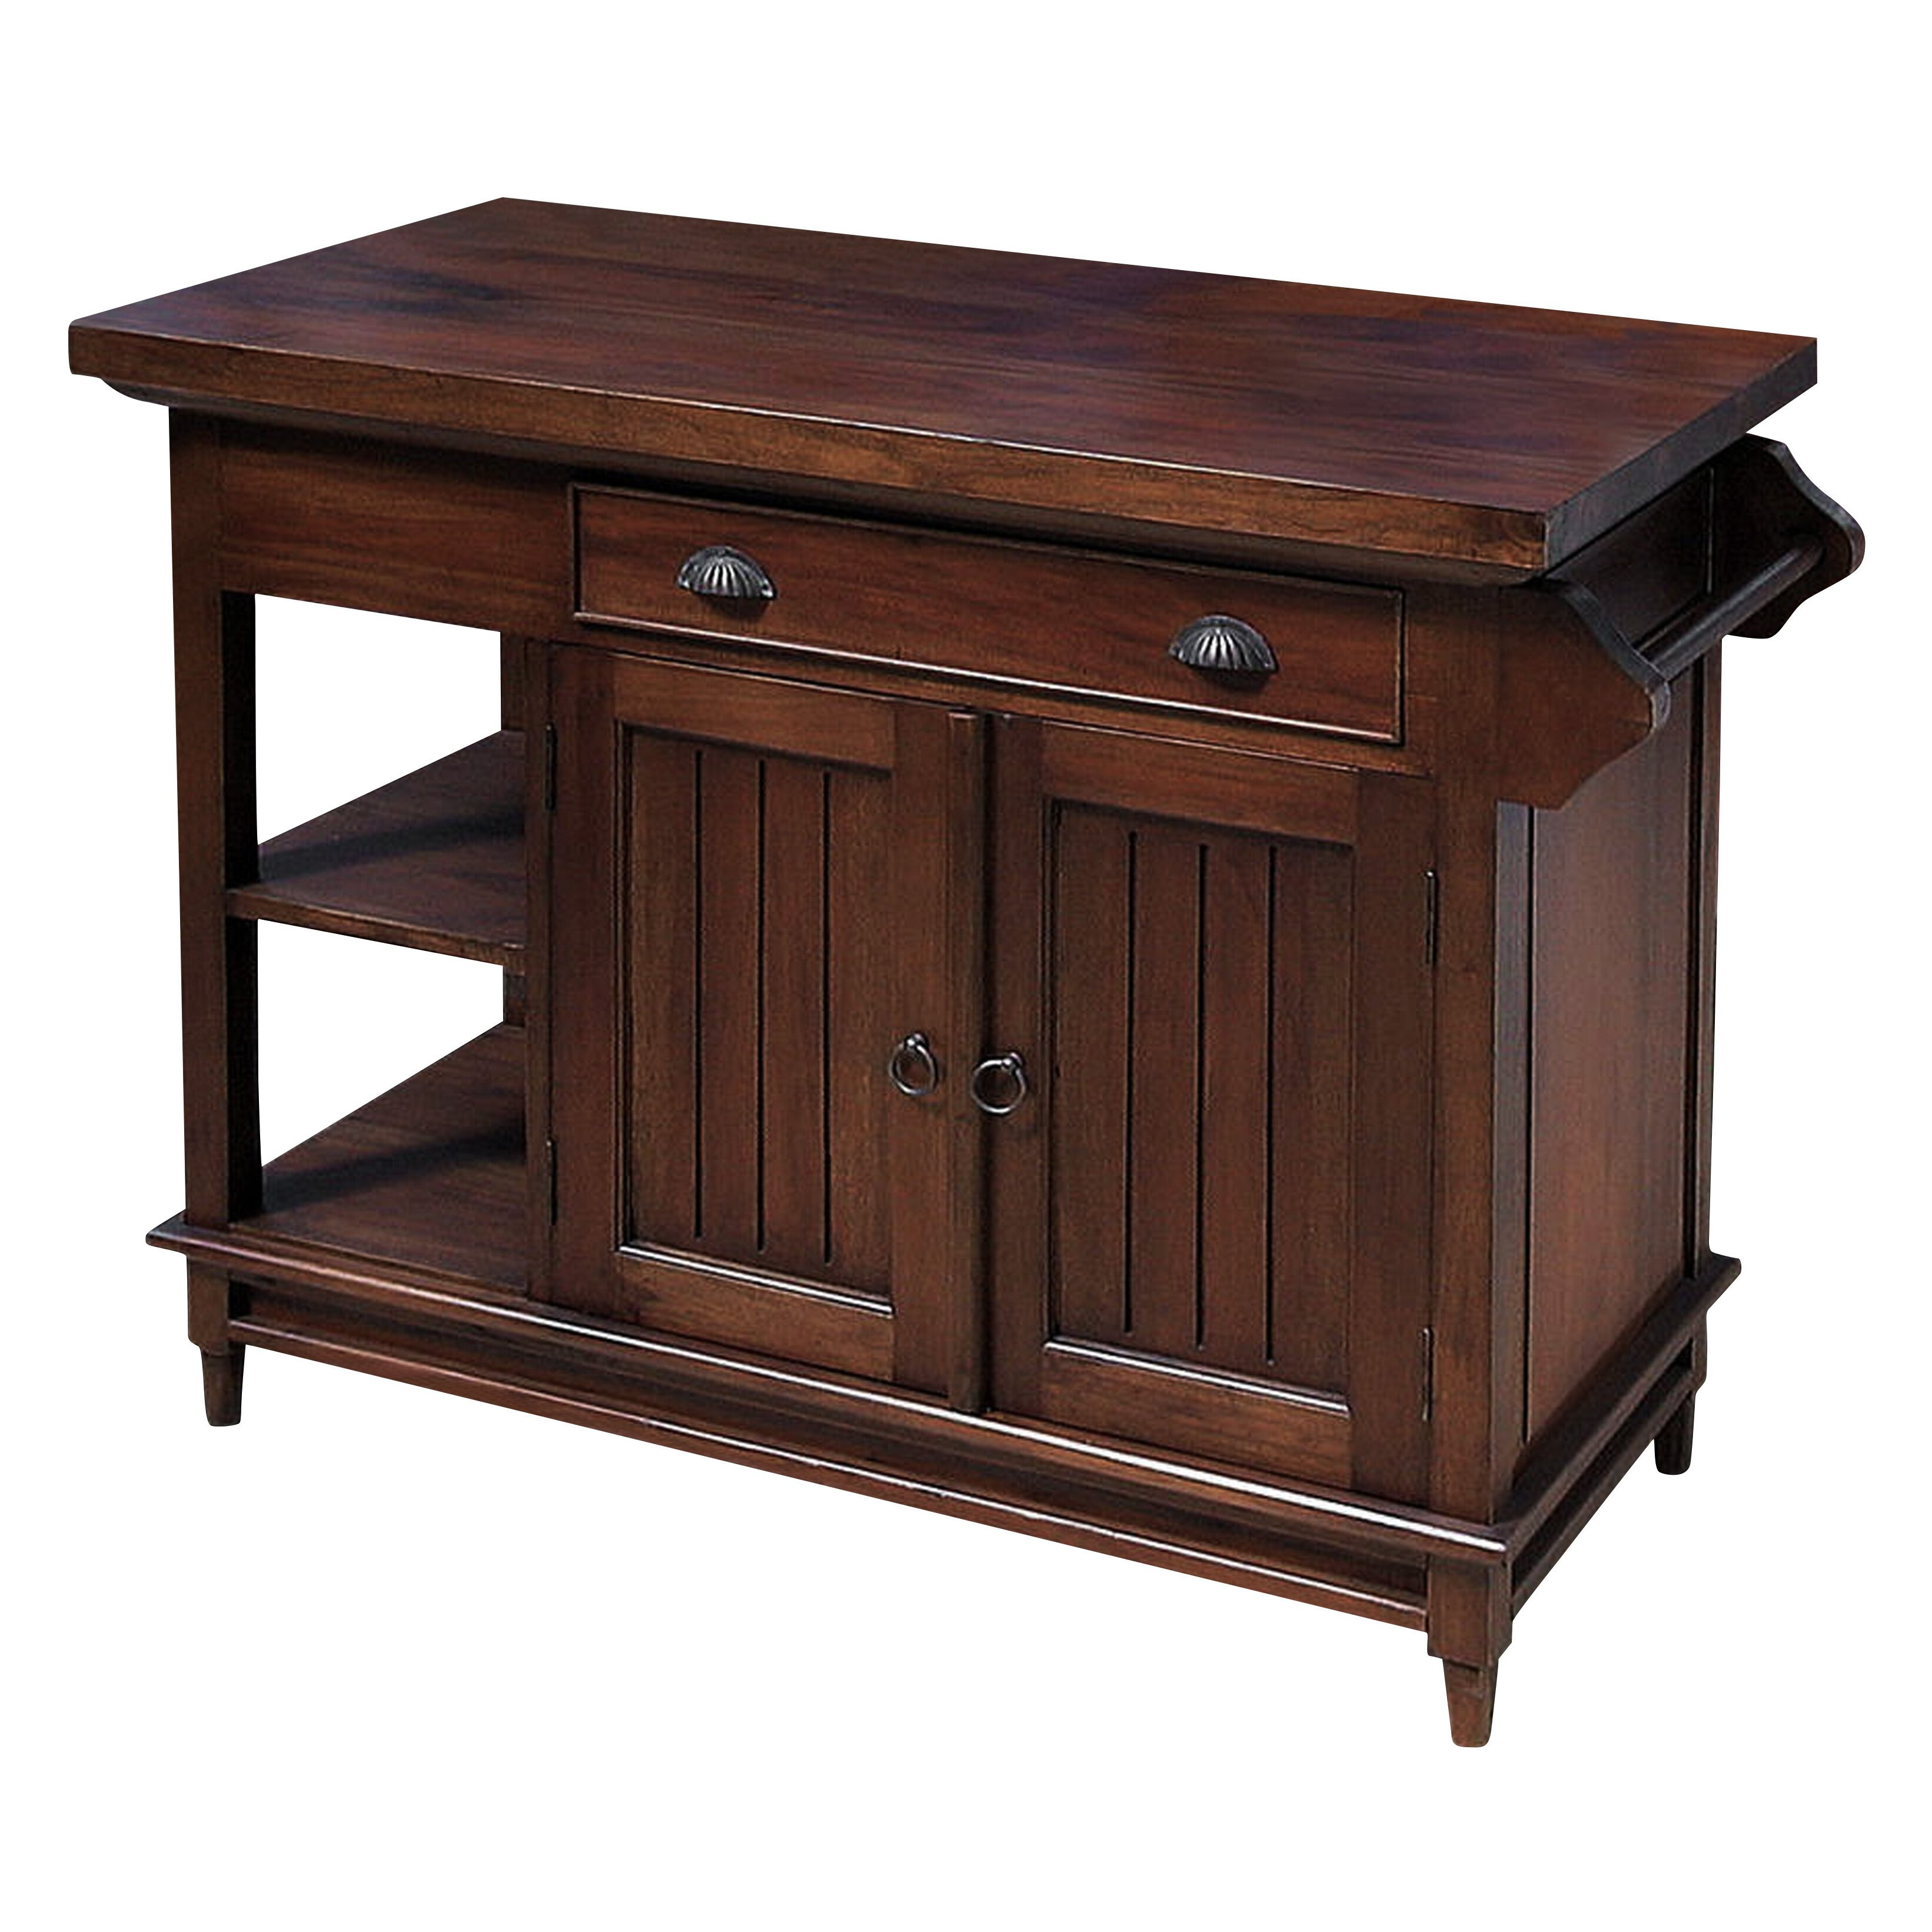 Solid Wood Kitchen: NES Furniture Fransisca Solid Mahogany Wood Kitchen Island